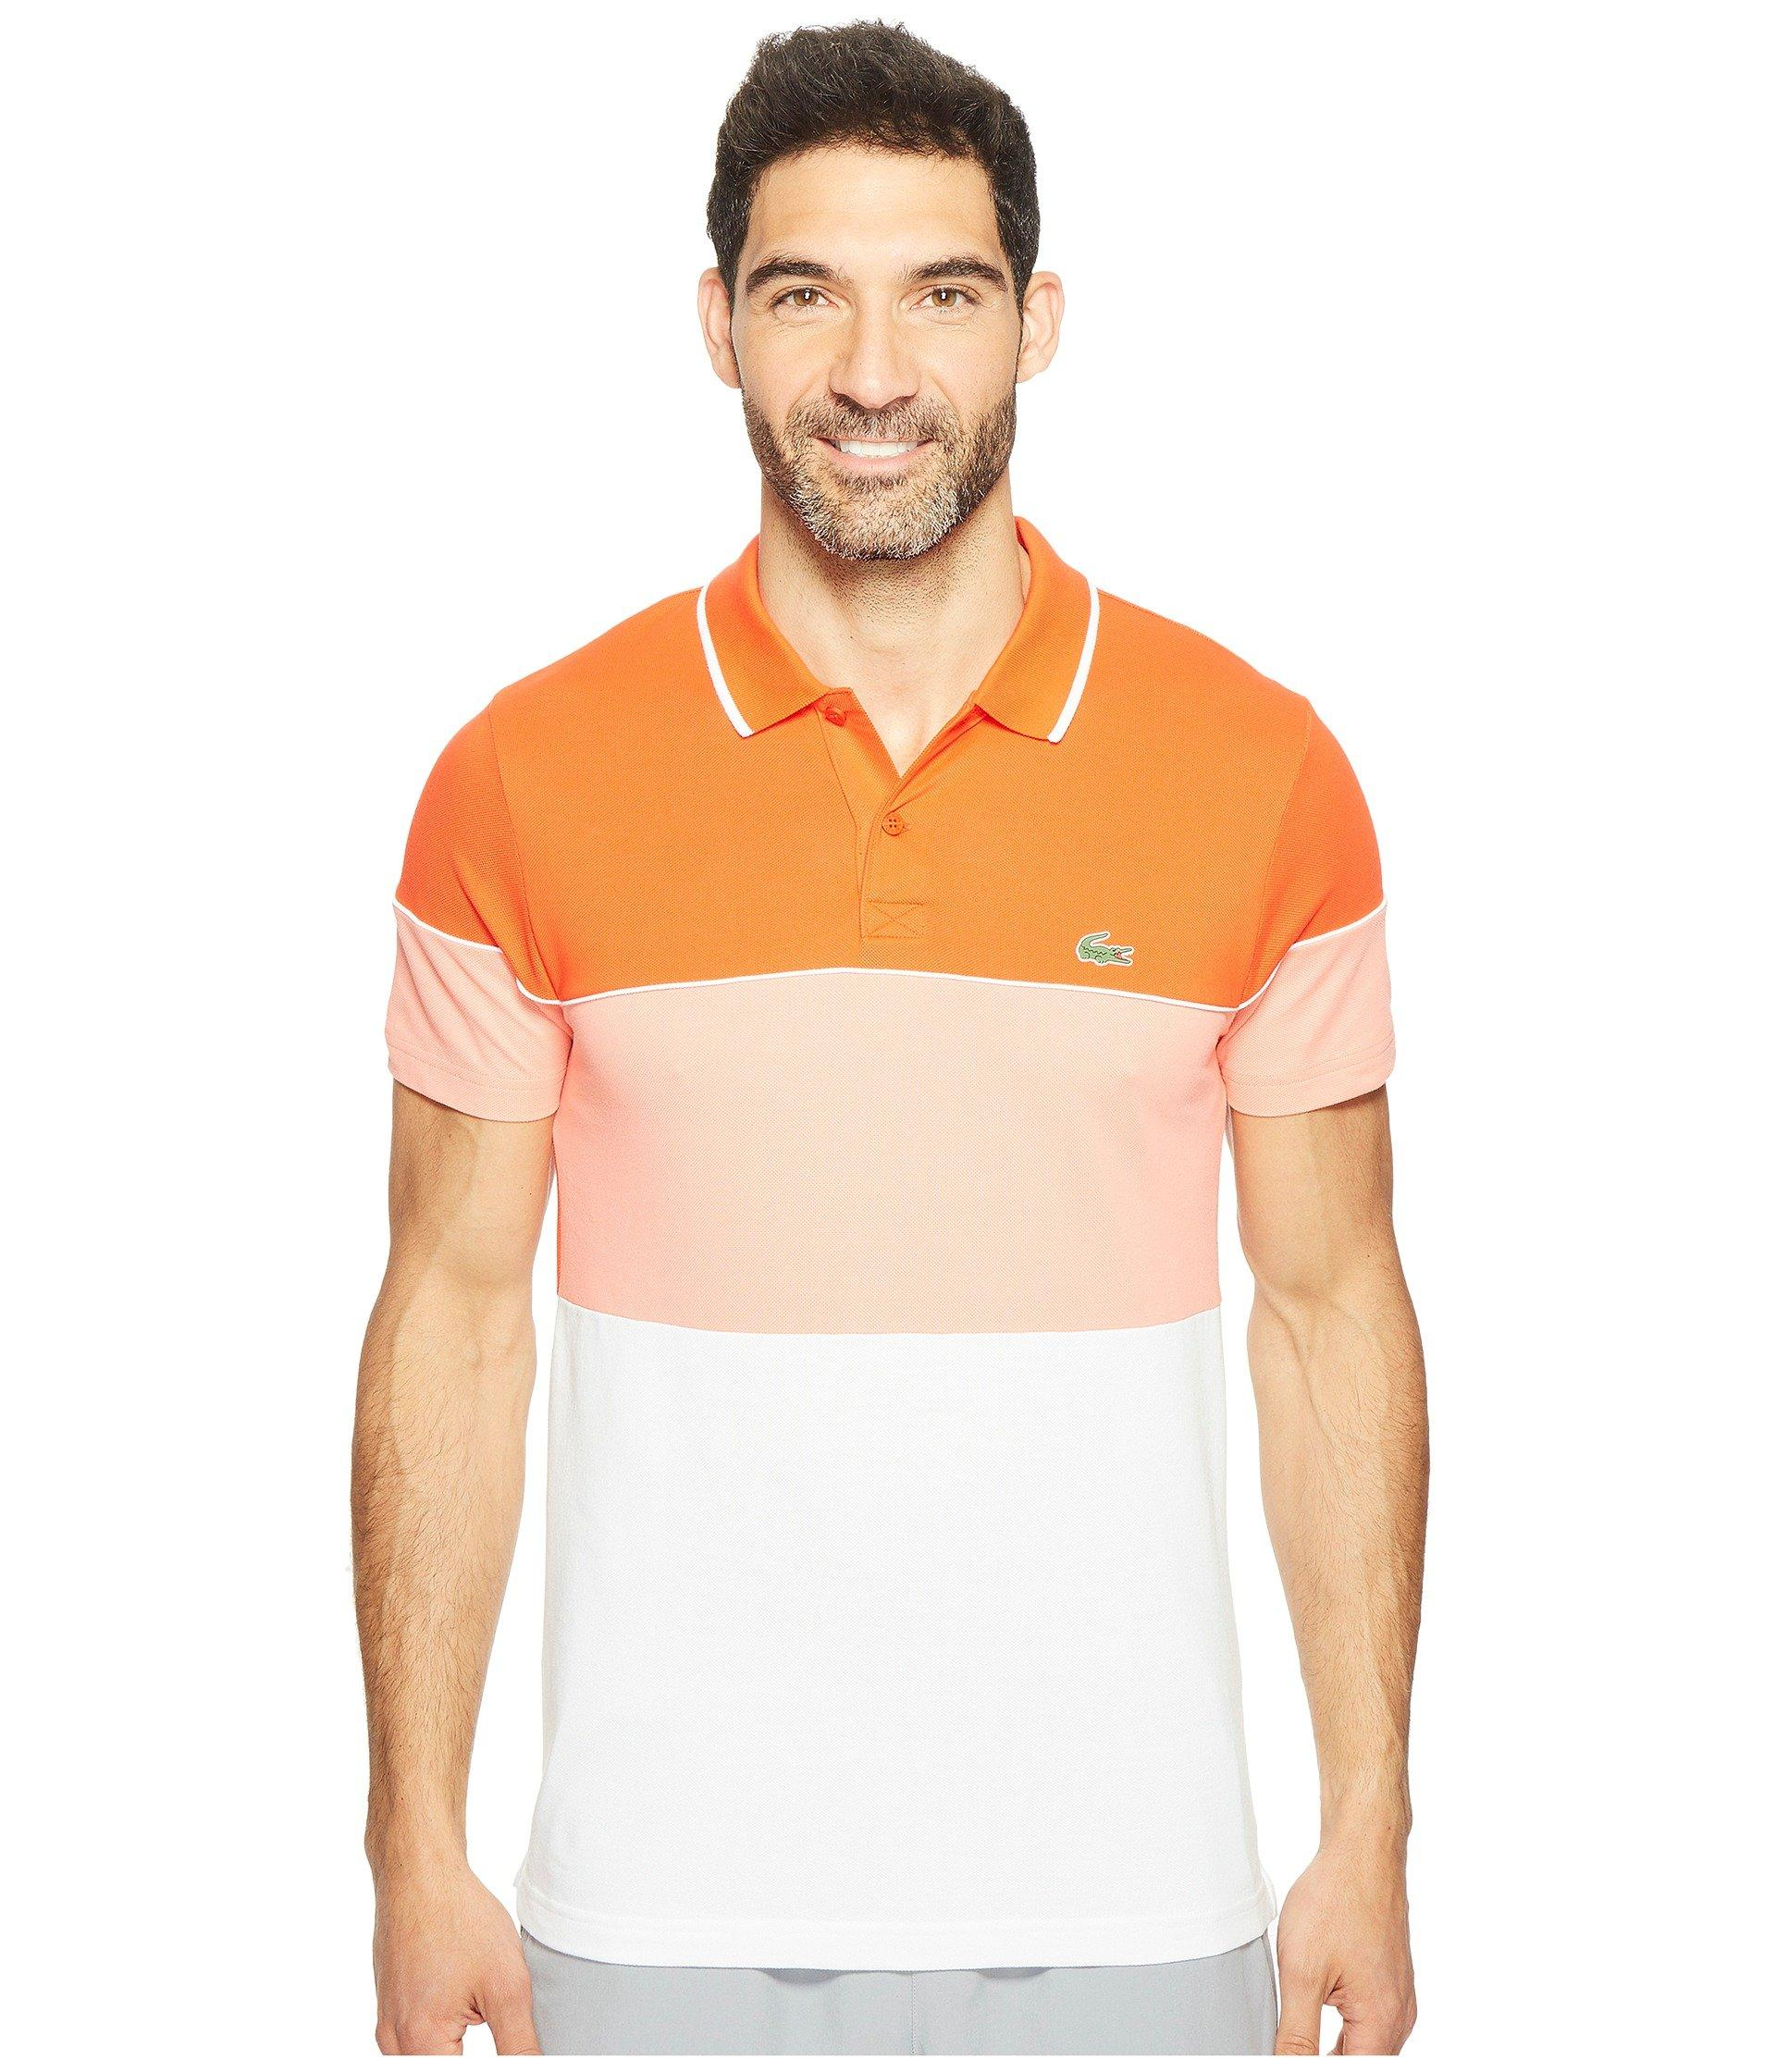 197066bbd7 Lacoste Golf Color Block Stripe Ultra Dry Pique Knit In Etna  Red/Tarama/White